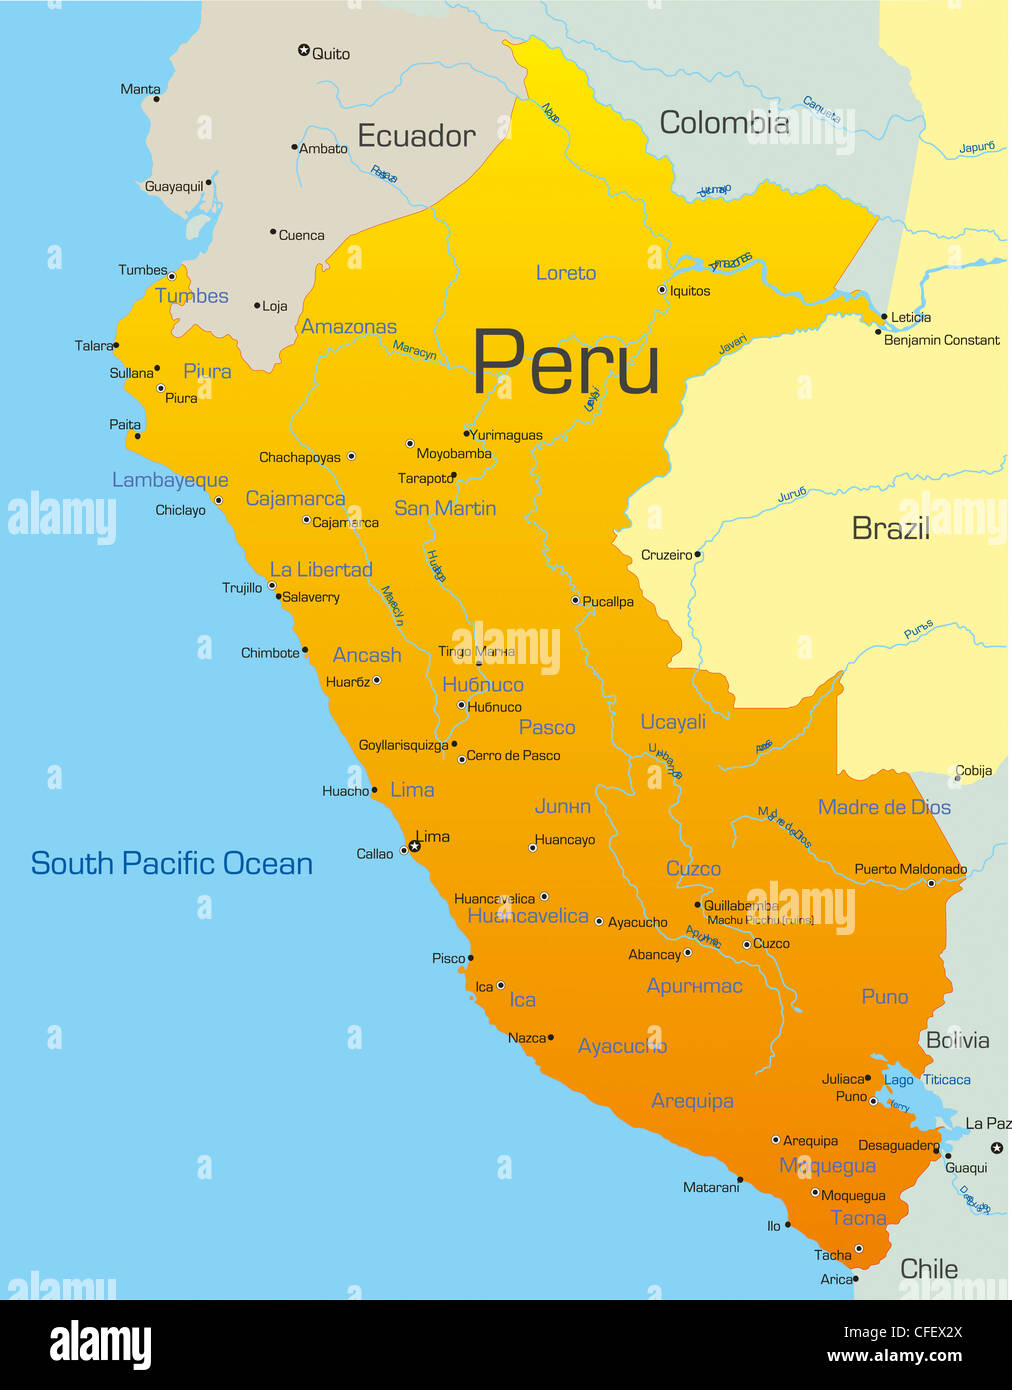 Abstract Vector Color Map Of Peru Country Stock Photo Royalty - Map of peru